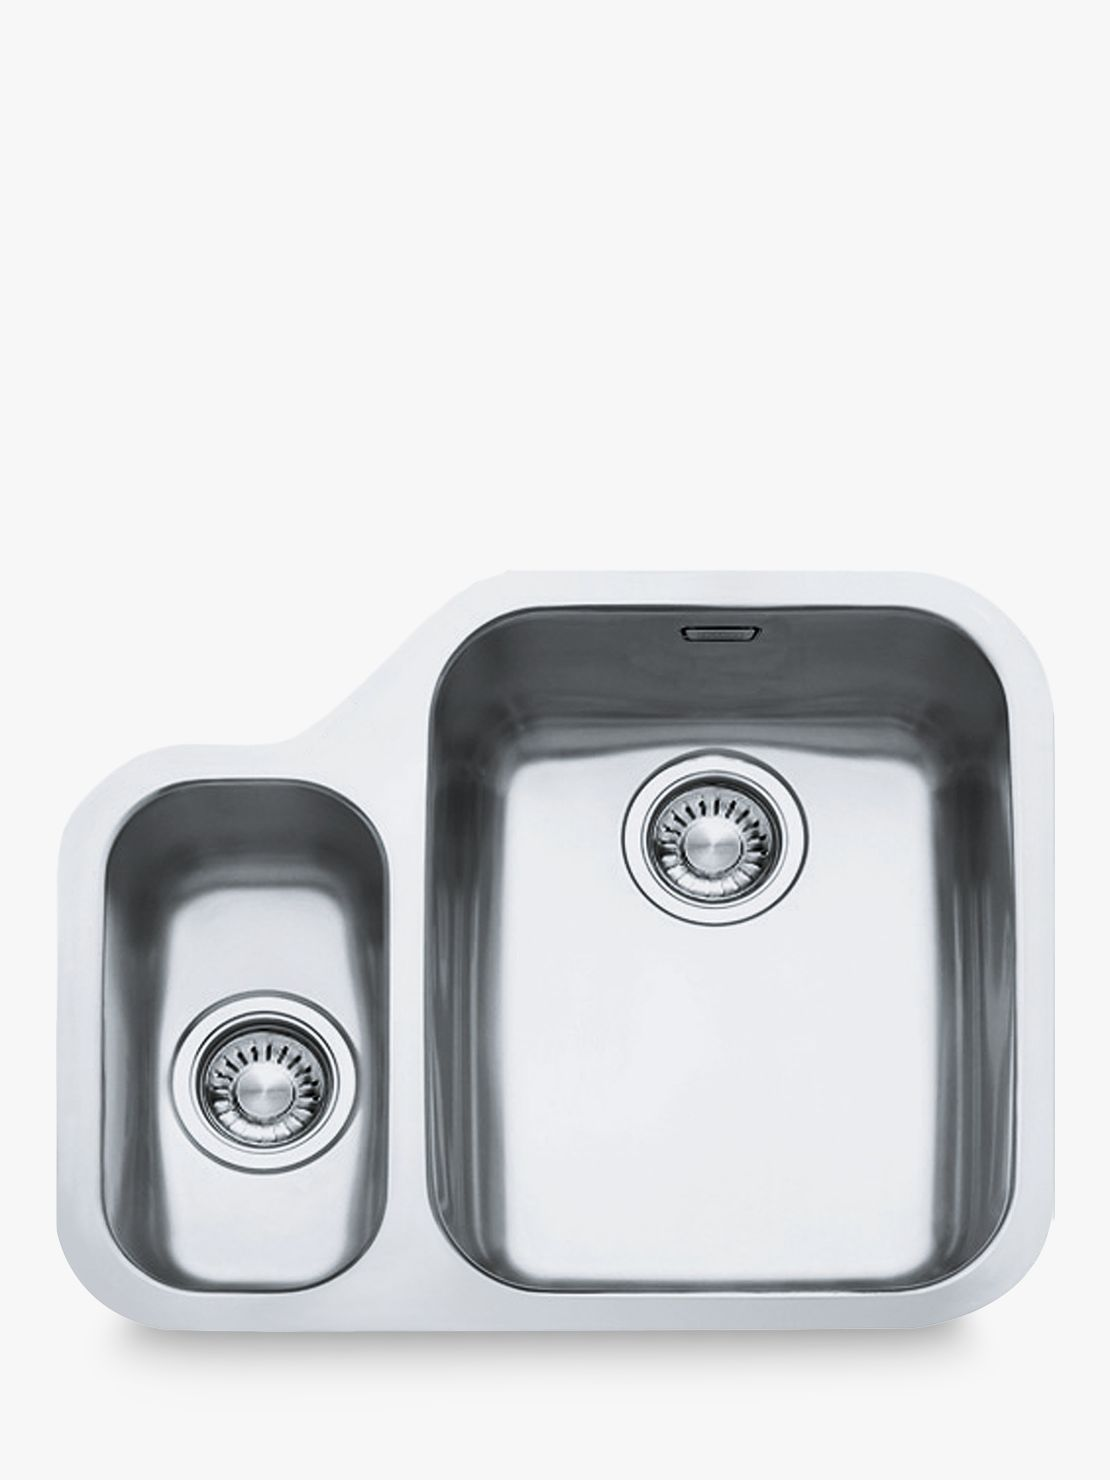 Franke Franke Ariane ARX160 1.5 Right Hand Bowl Kitchen Sink, Stainless Steel